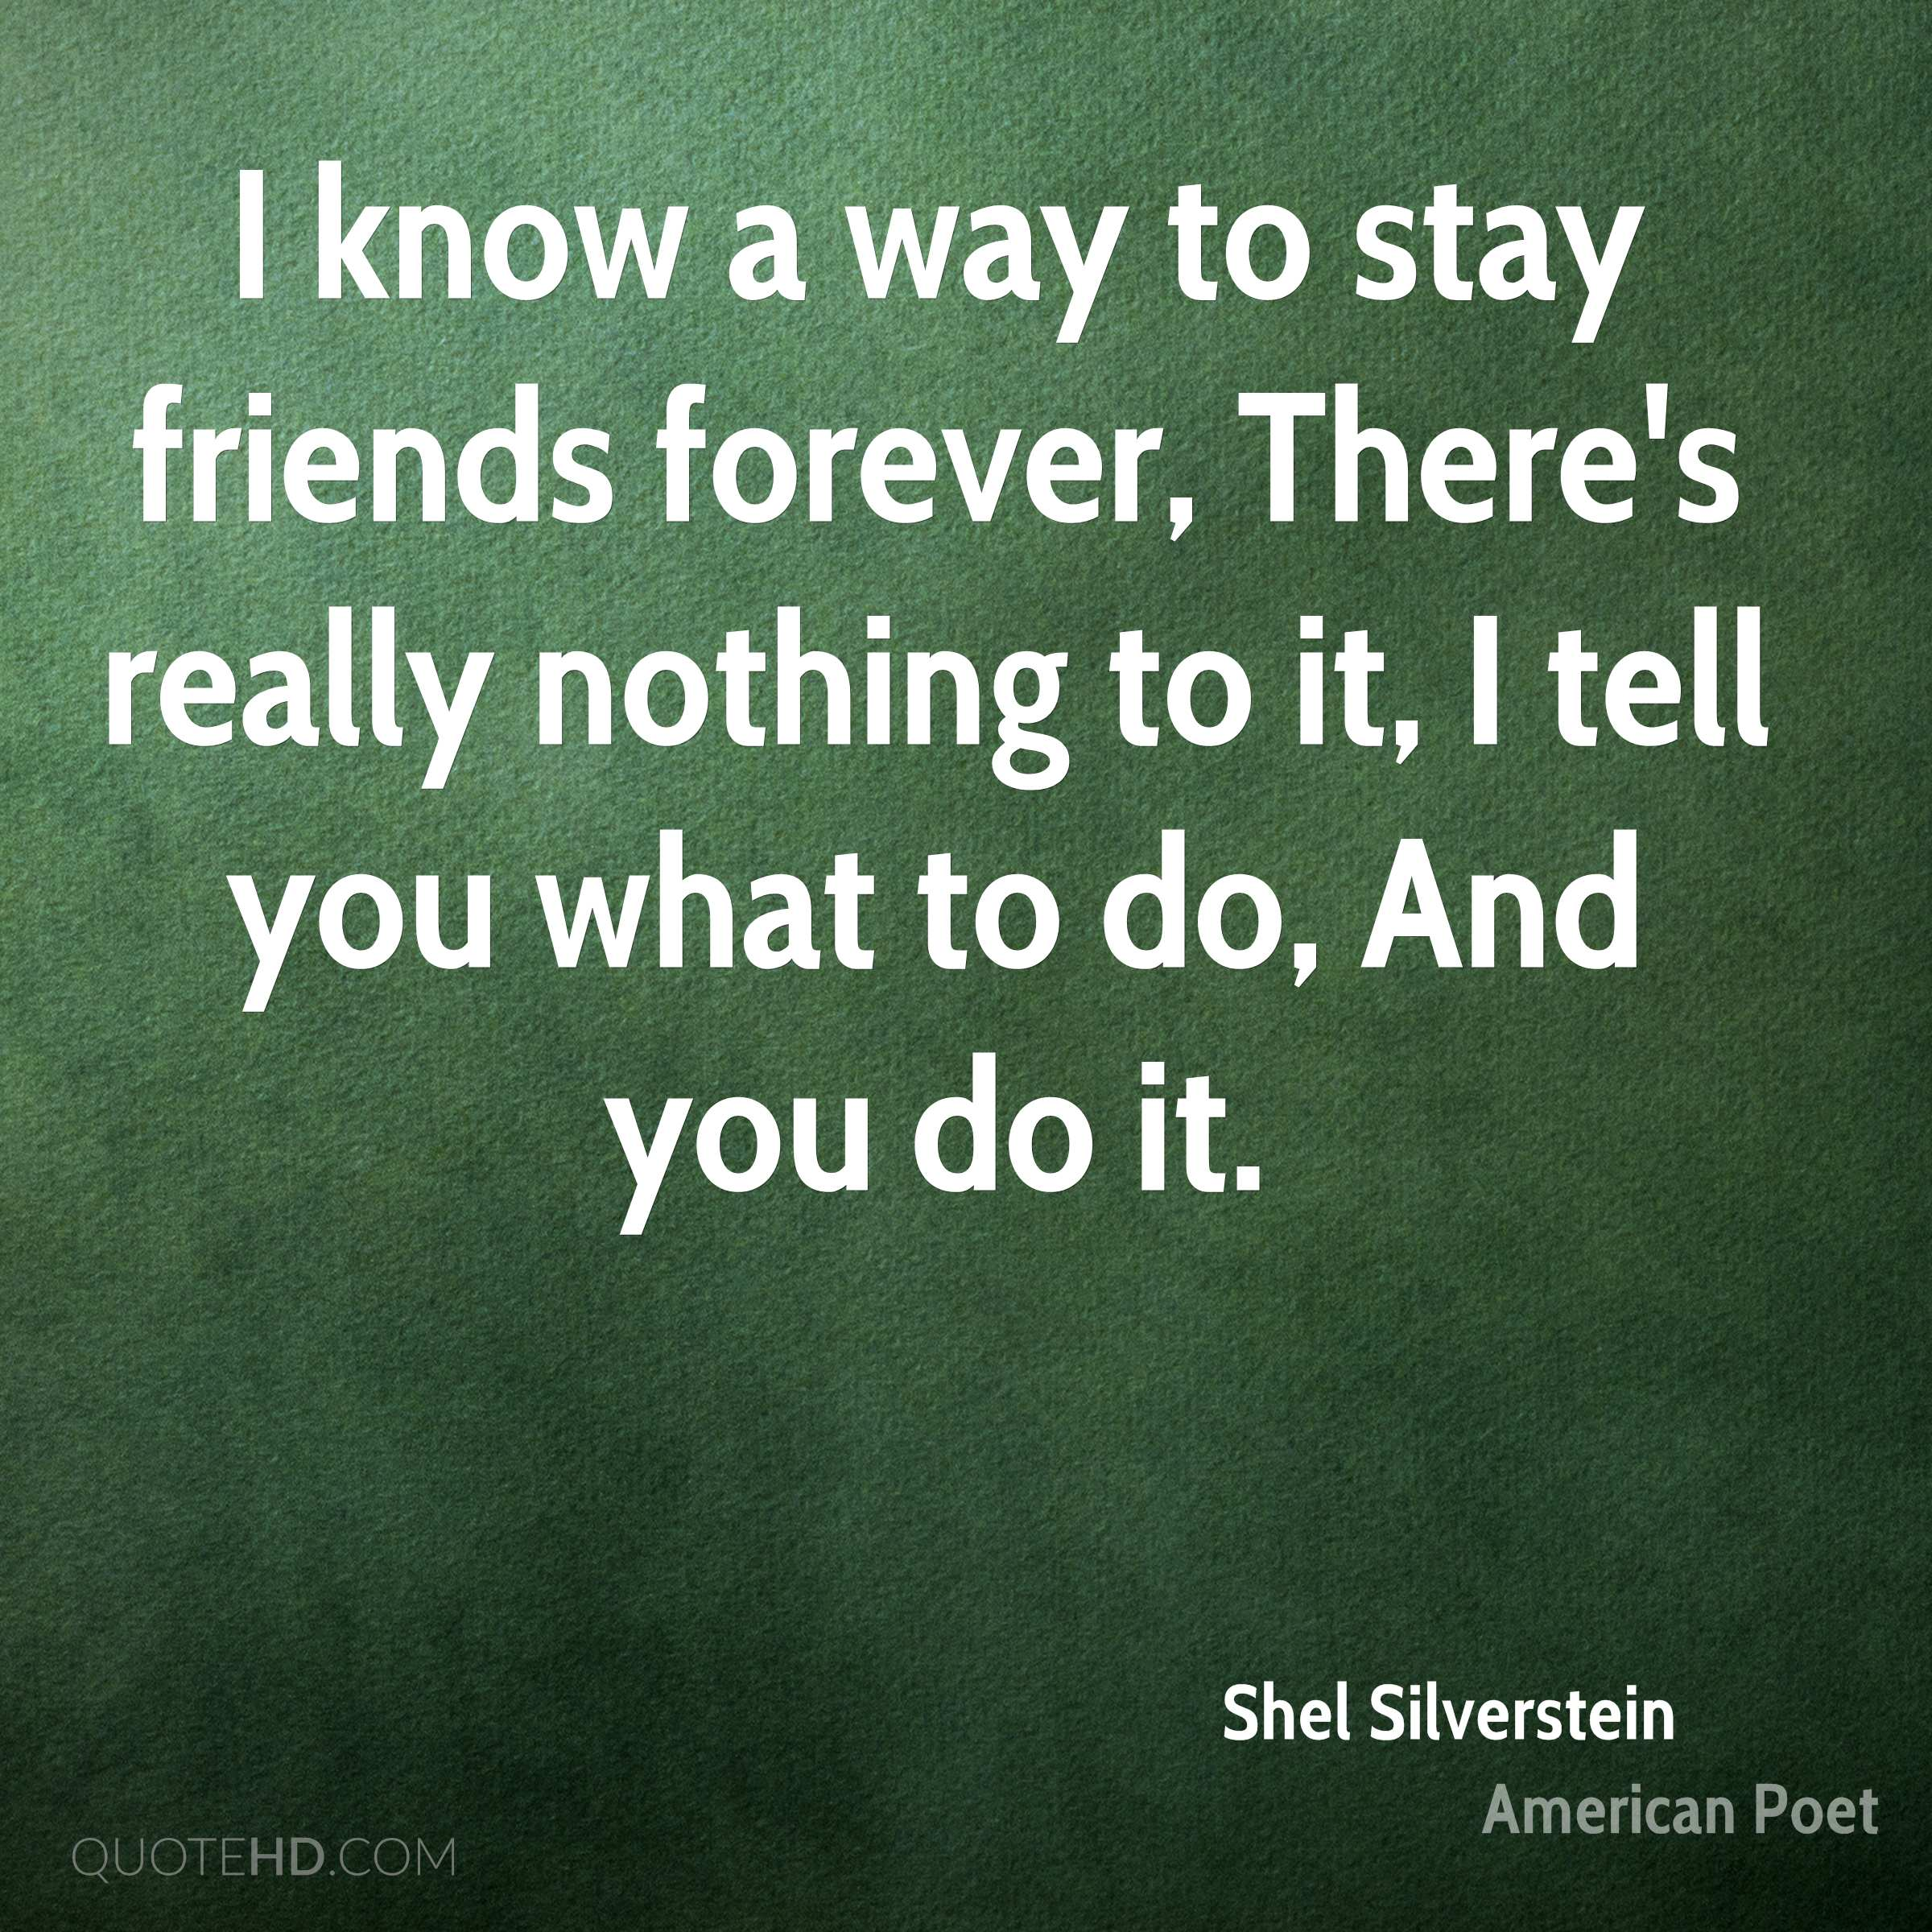 Friends Forever Quotes Shel Silverstein Quotes  Quotehd